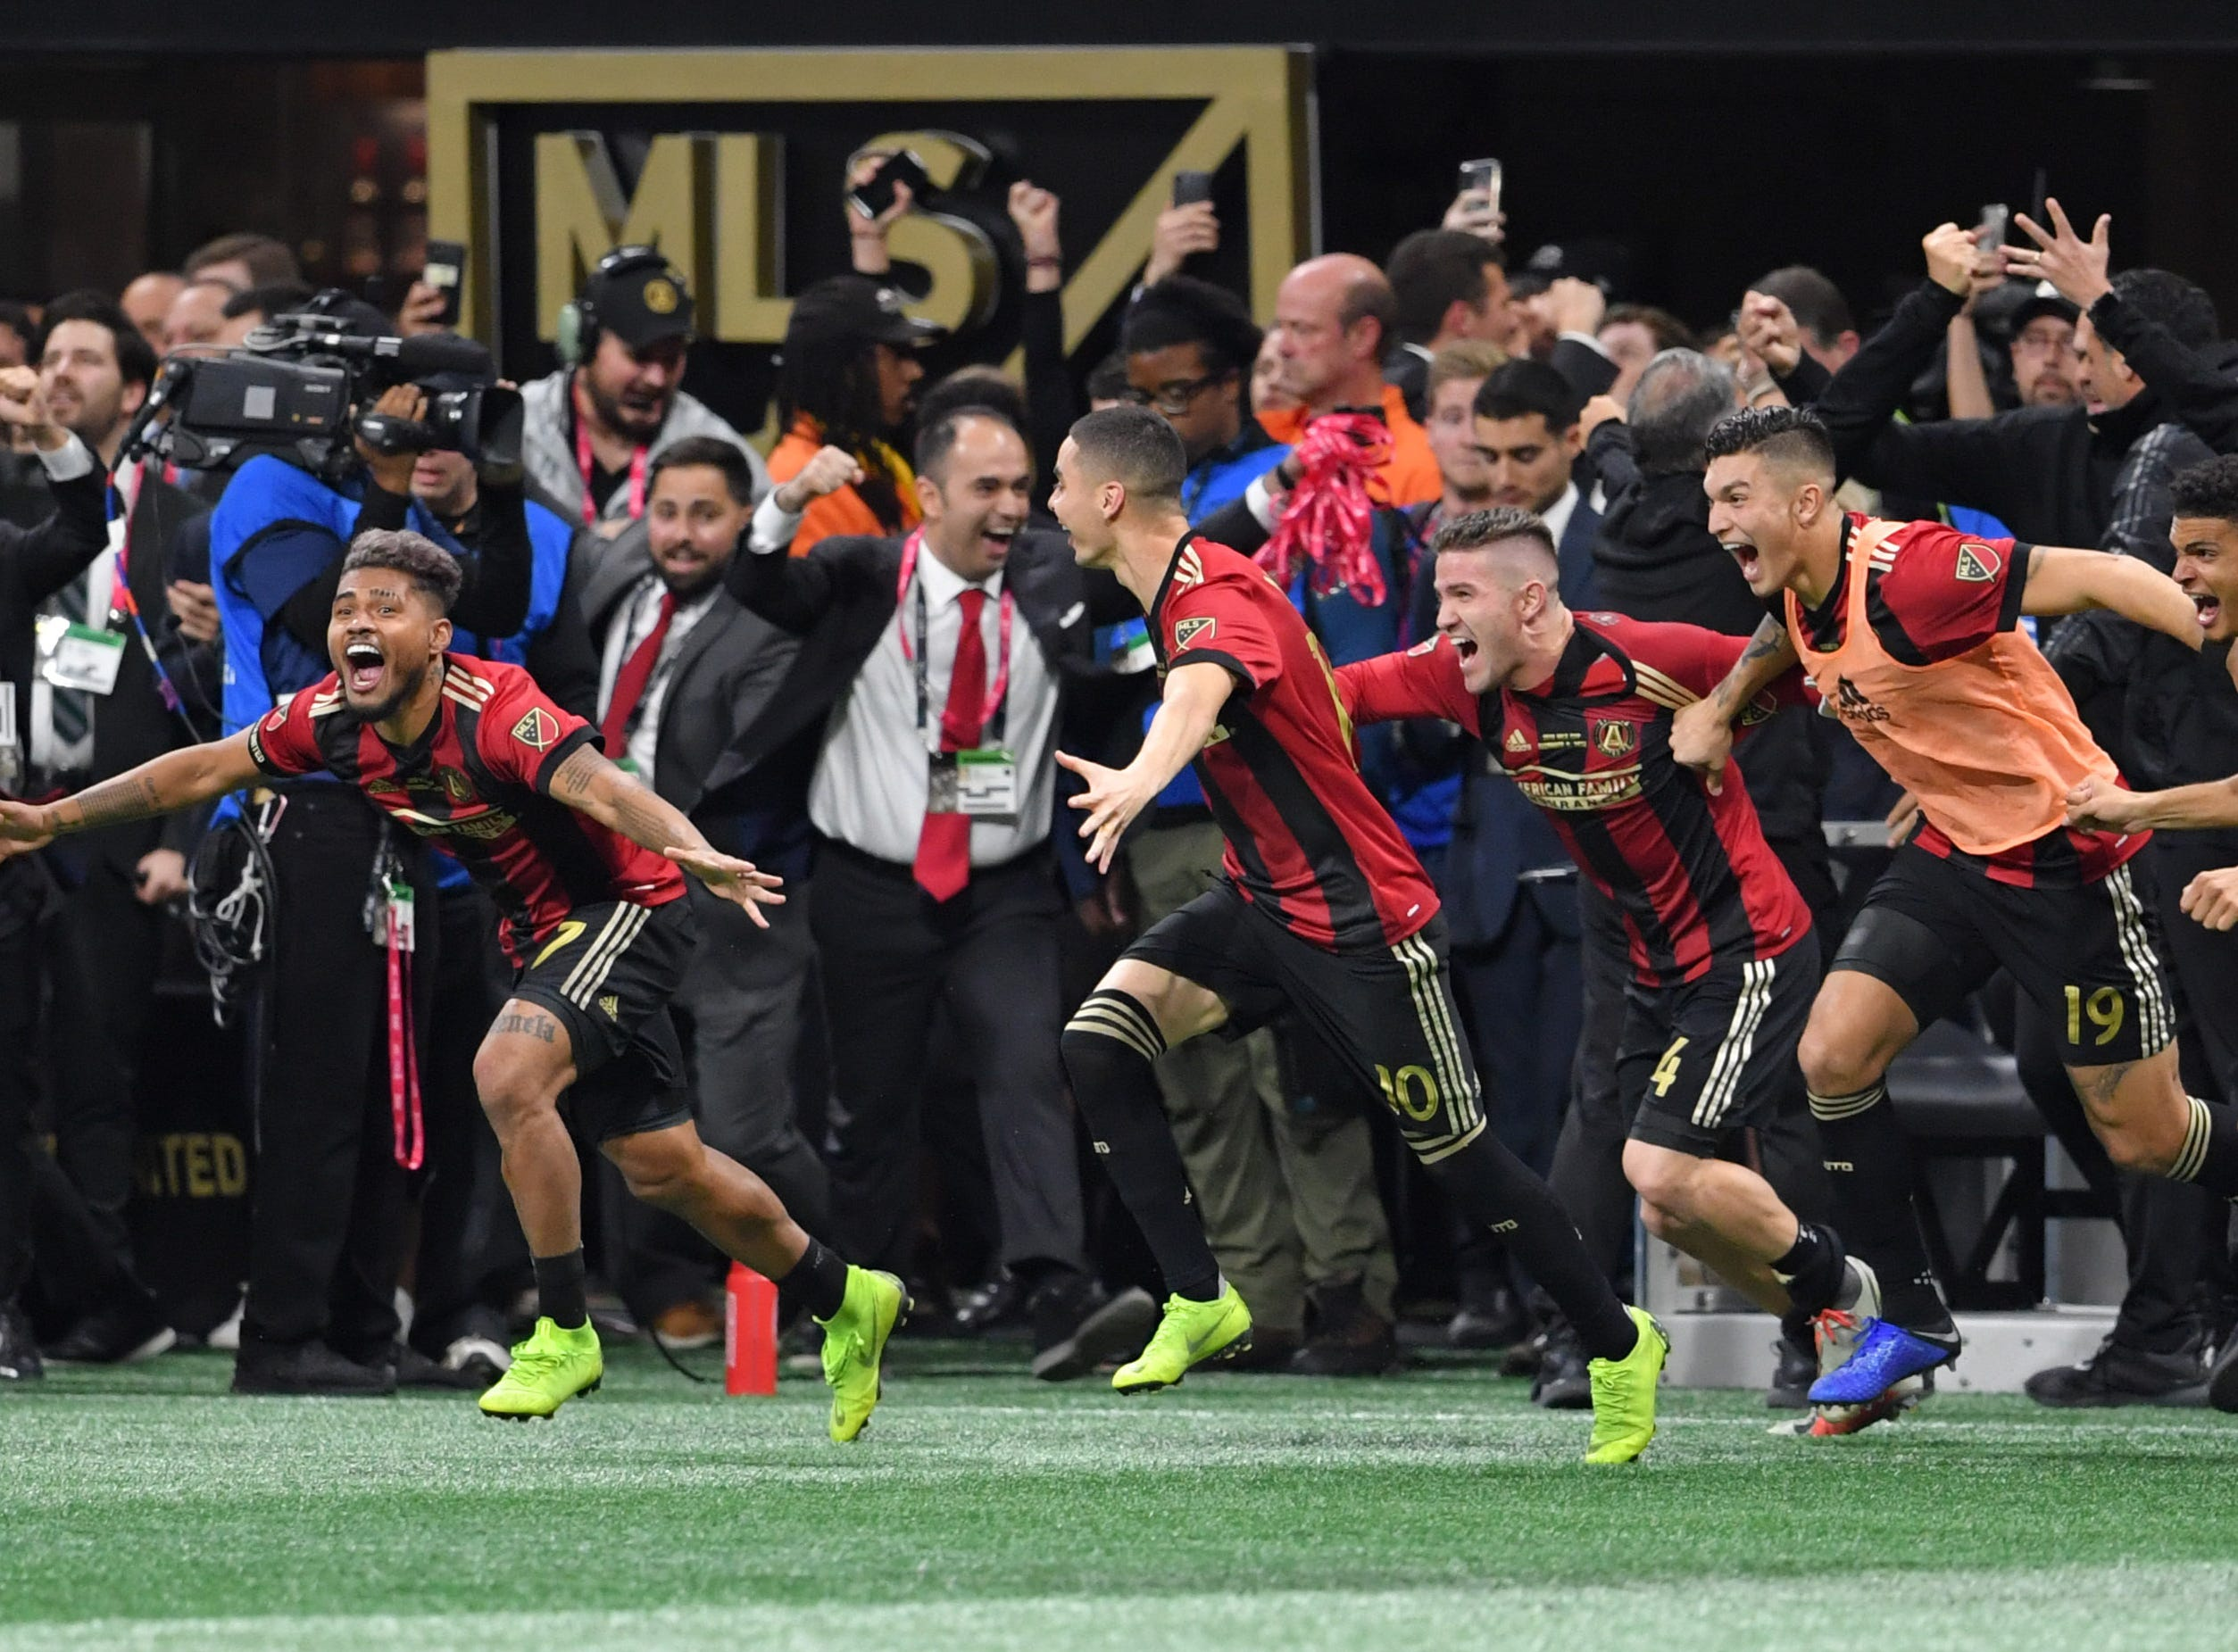 Atlanta United forward Josef Martinez (7) and his teammates rush the field after defeating the Portland Timbers 2-0 in the 2018 MLS Cup championship game at Mercedes-Benz Stadium.